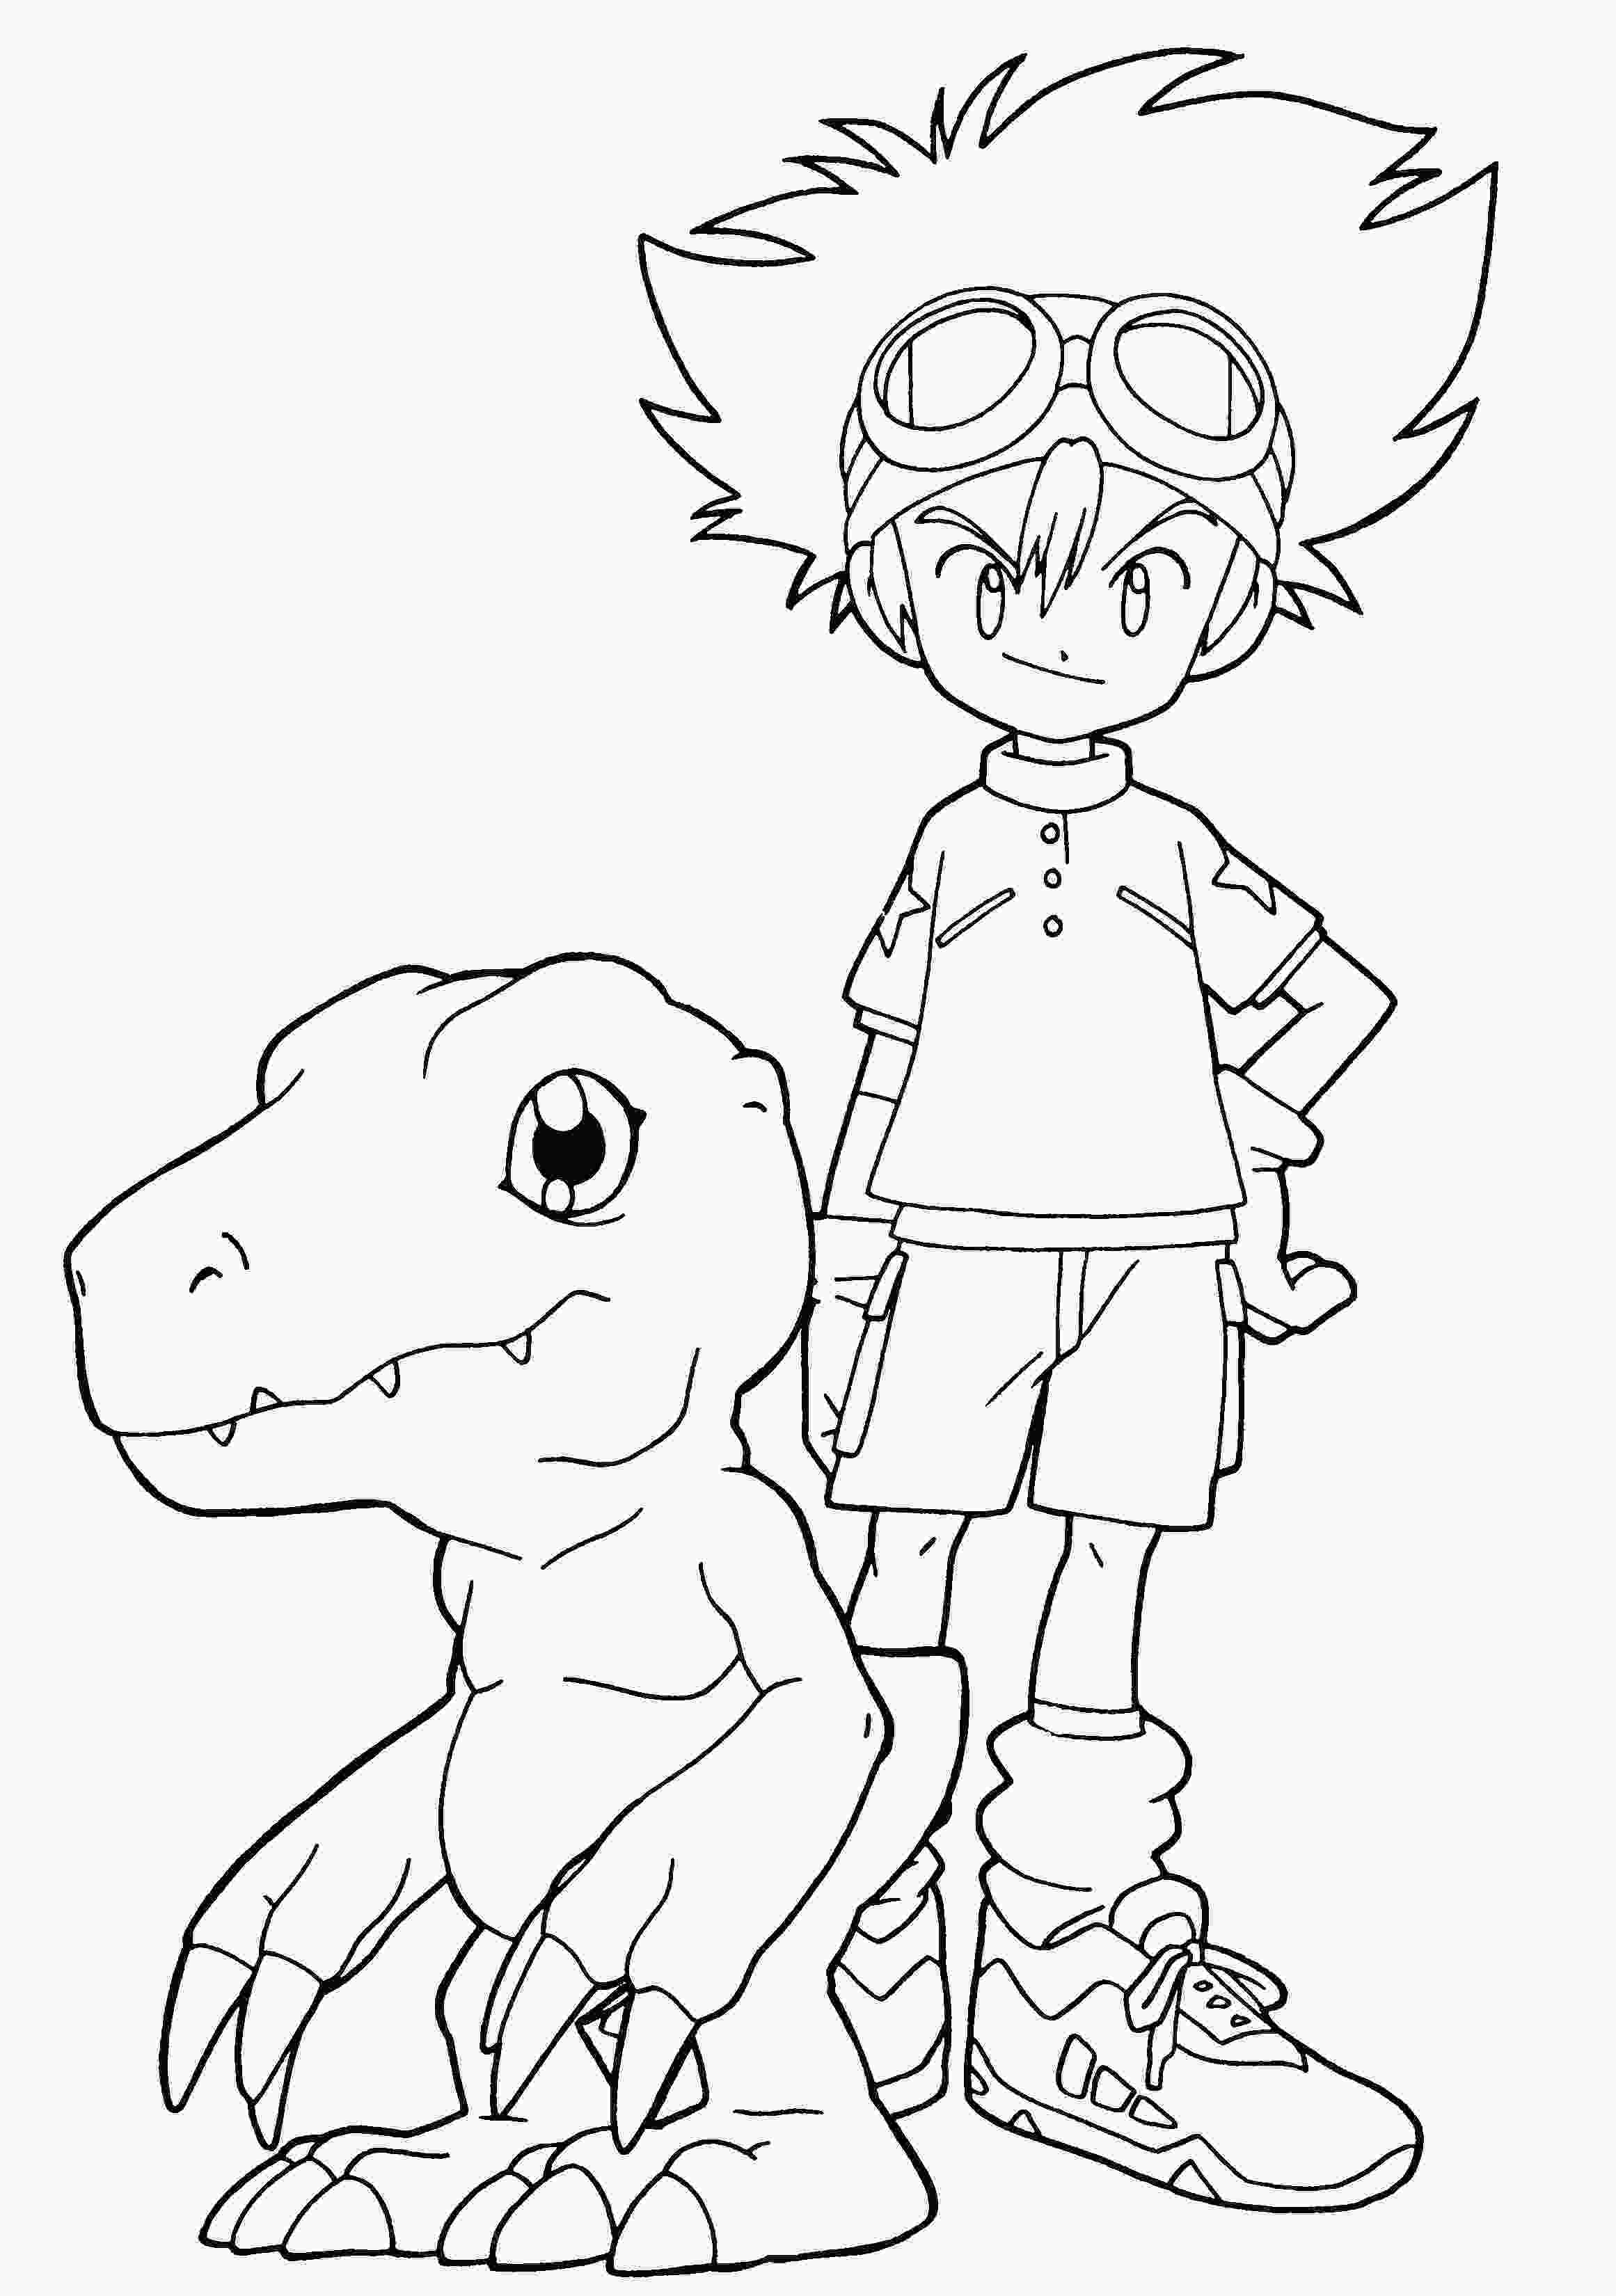 digimon coloring digimon coloring pages coloring page digimon